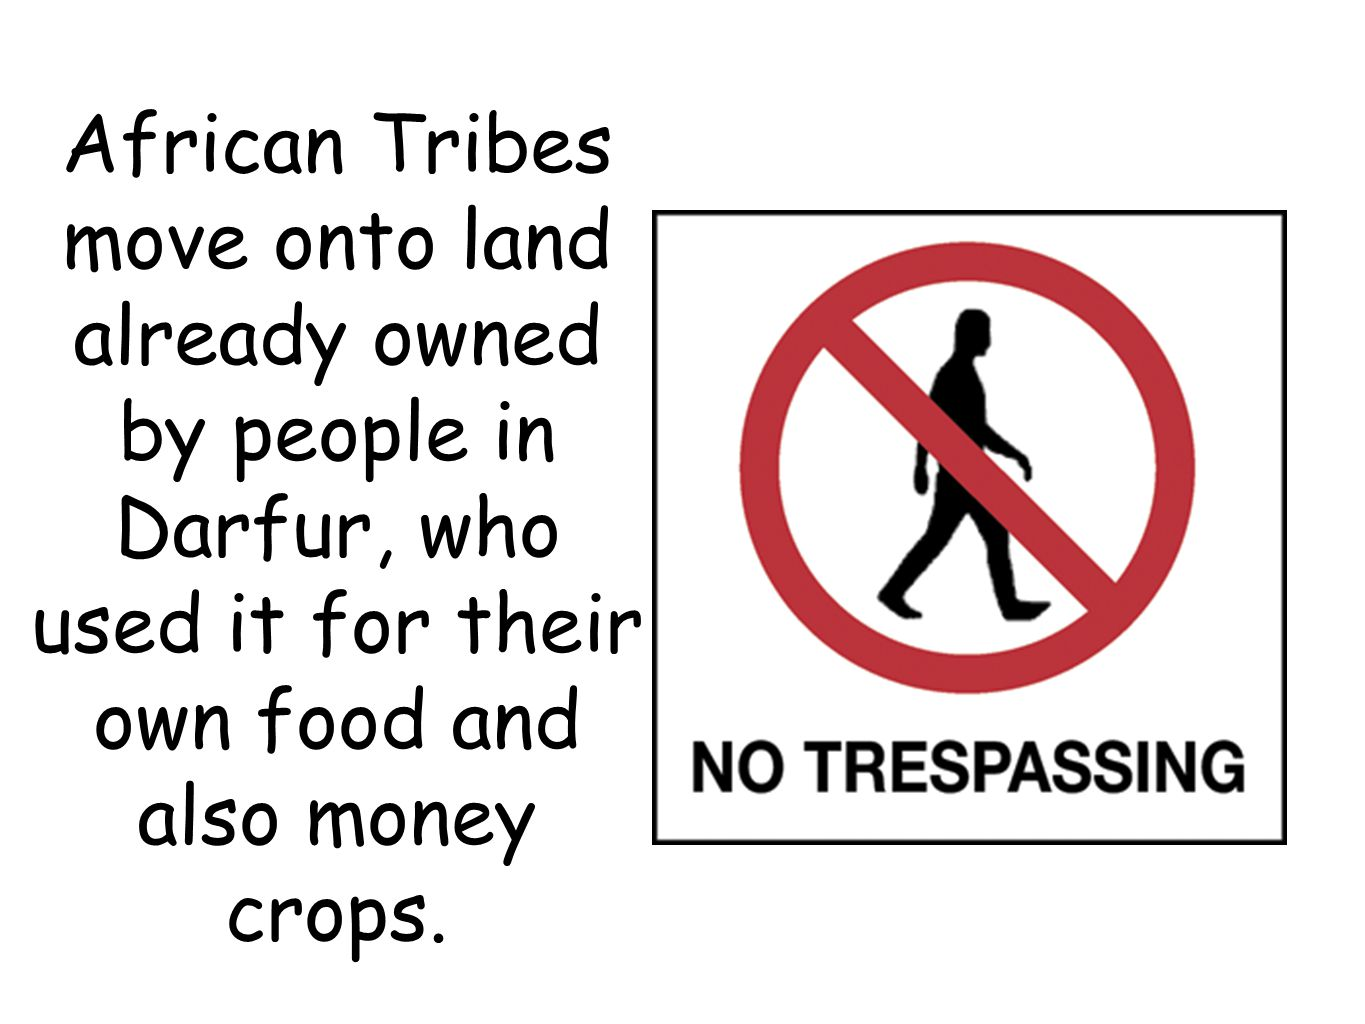 African Tribes move onto land already owned by people in Darfur, who used it for their own food and also money crops.